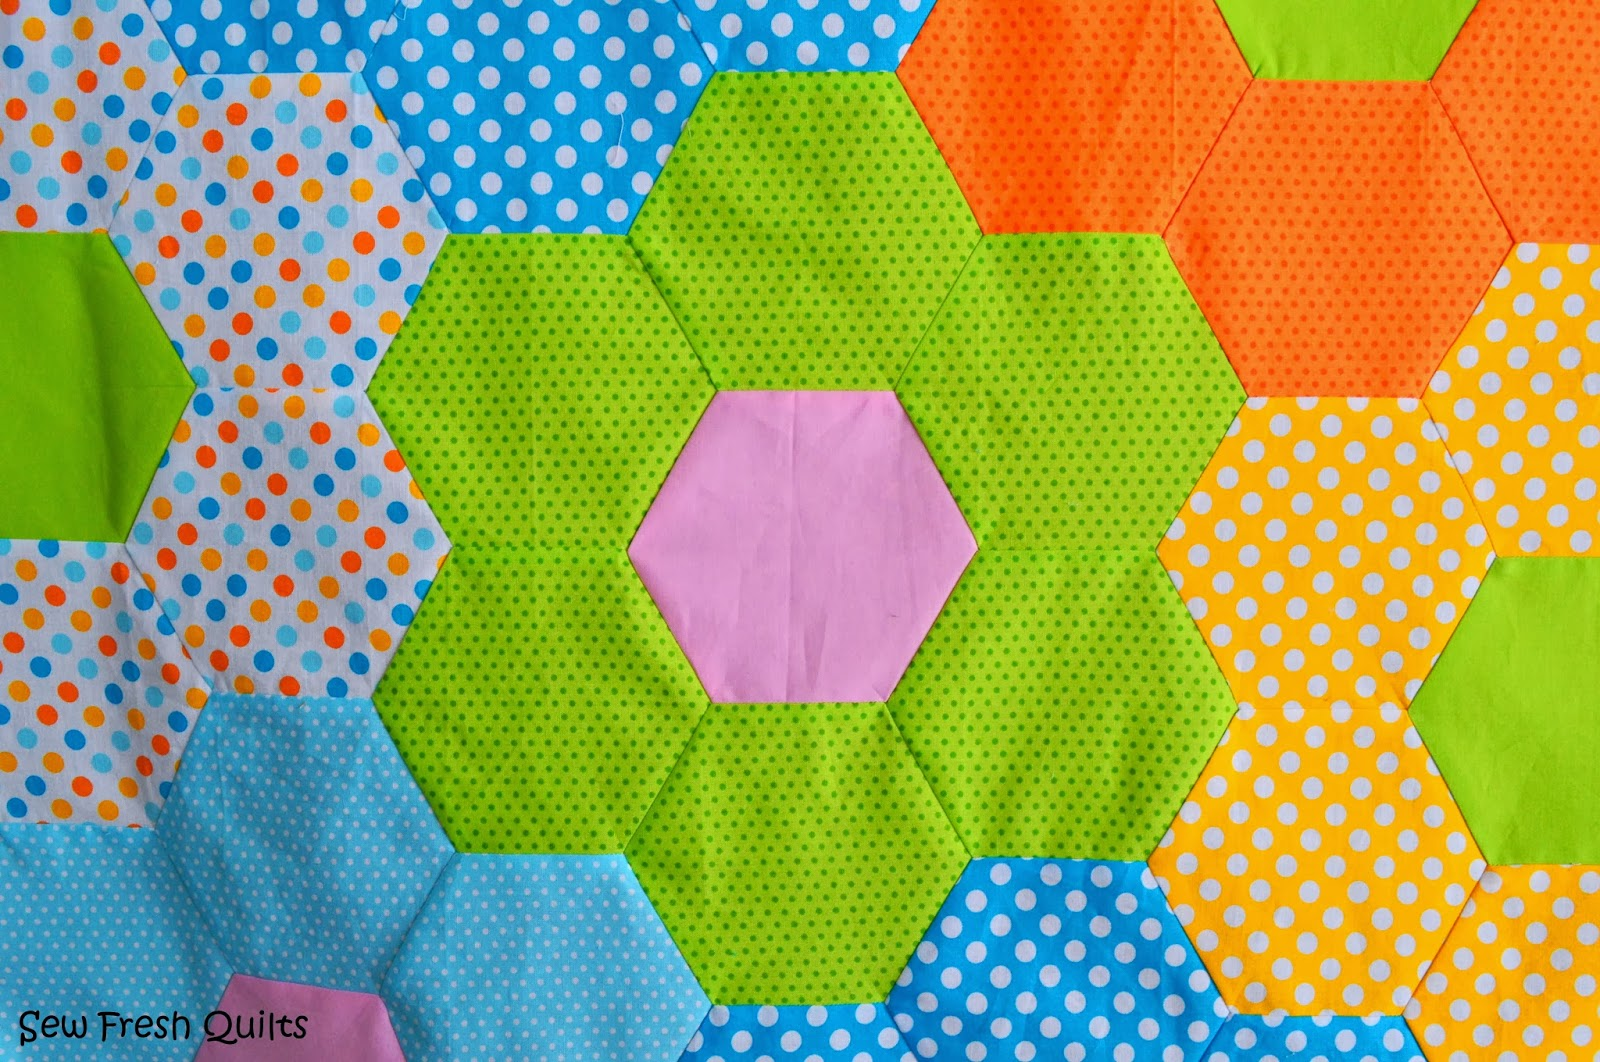 Free Quilt Pattern For Hexagon : Sew Fresh Quilts: Tutorial for Sewing Hexagons by Machine